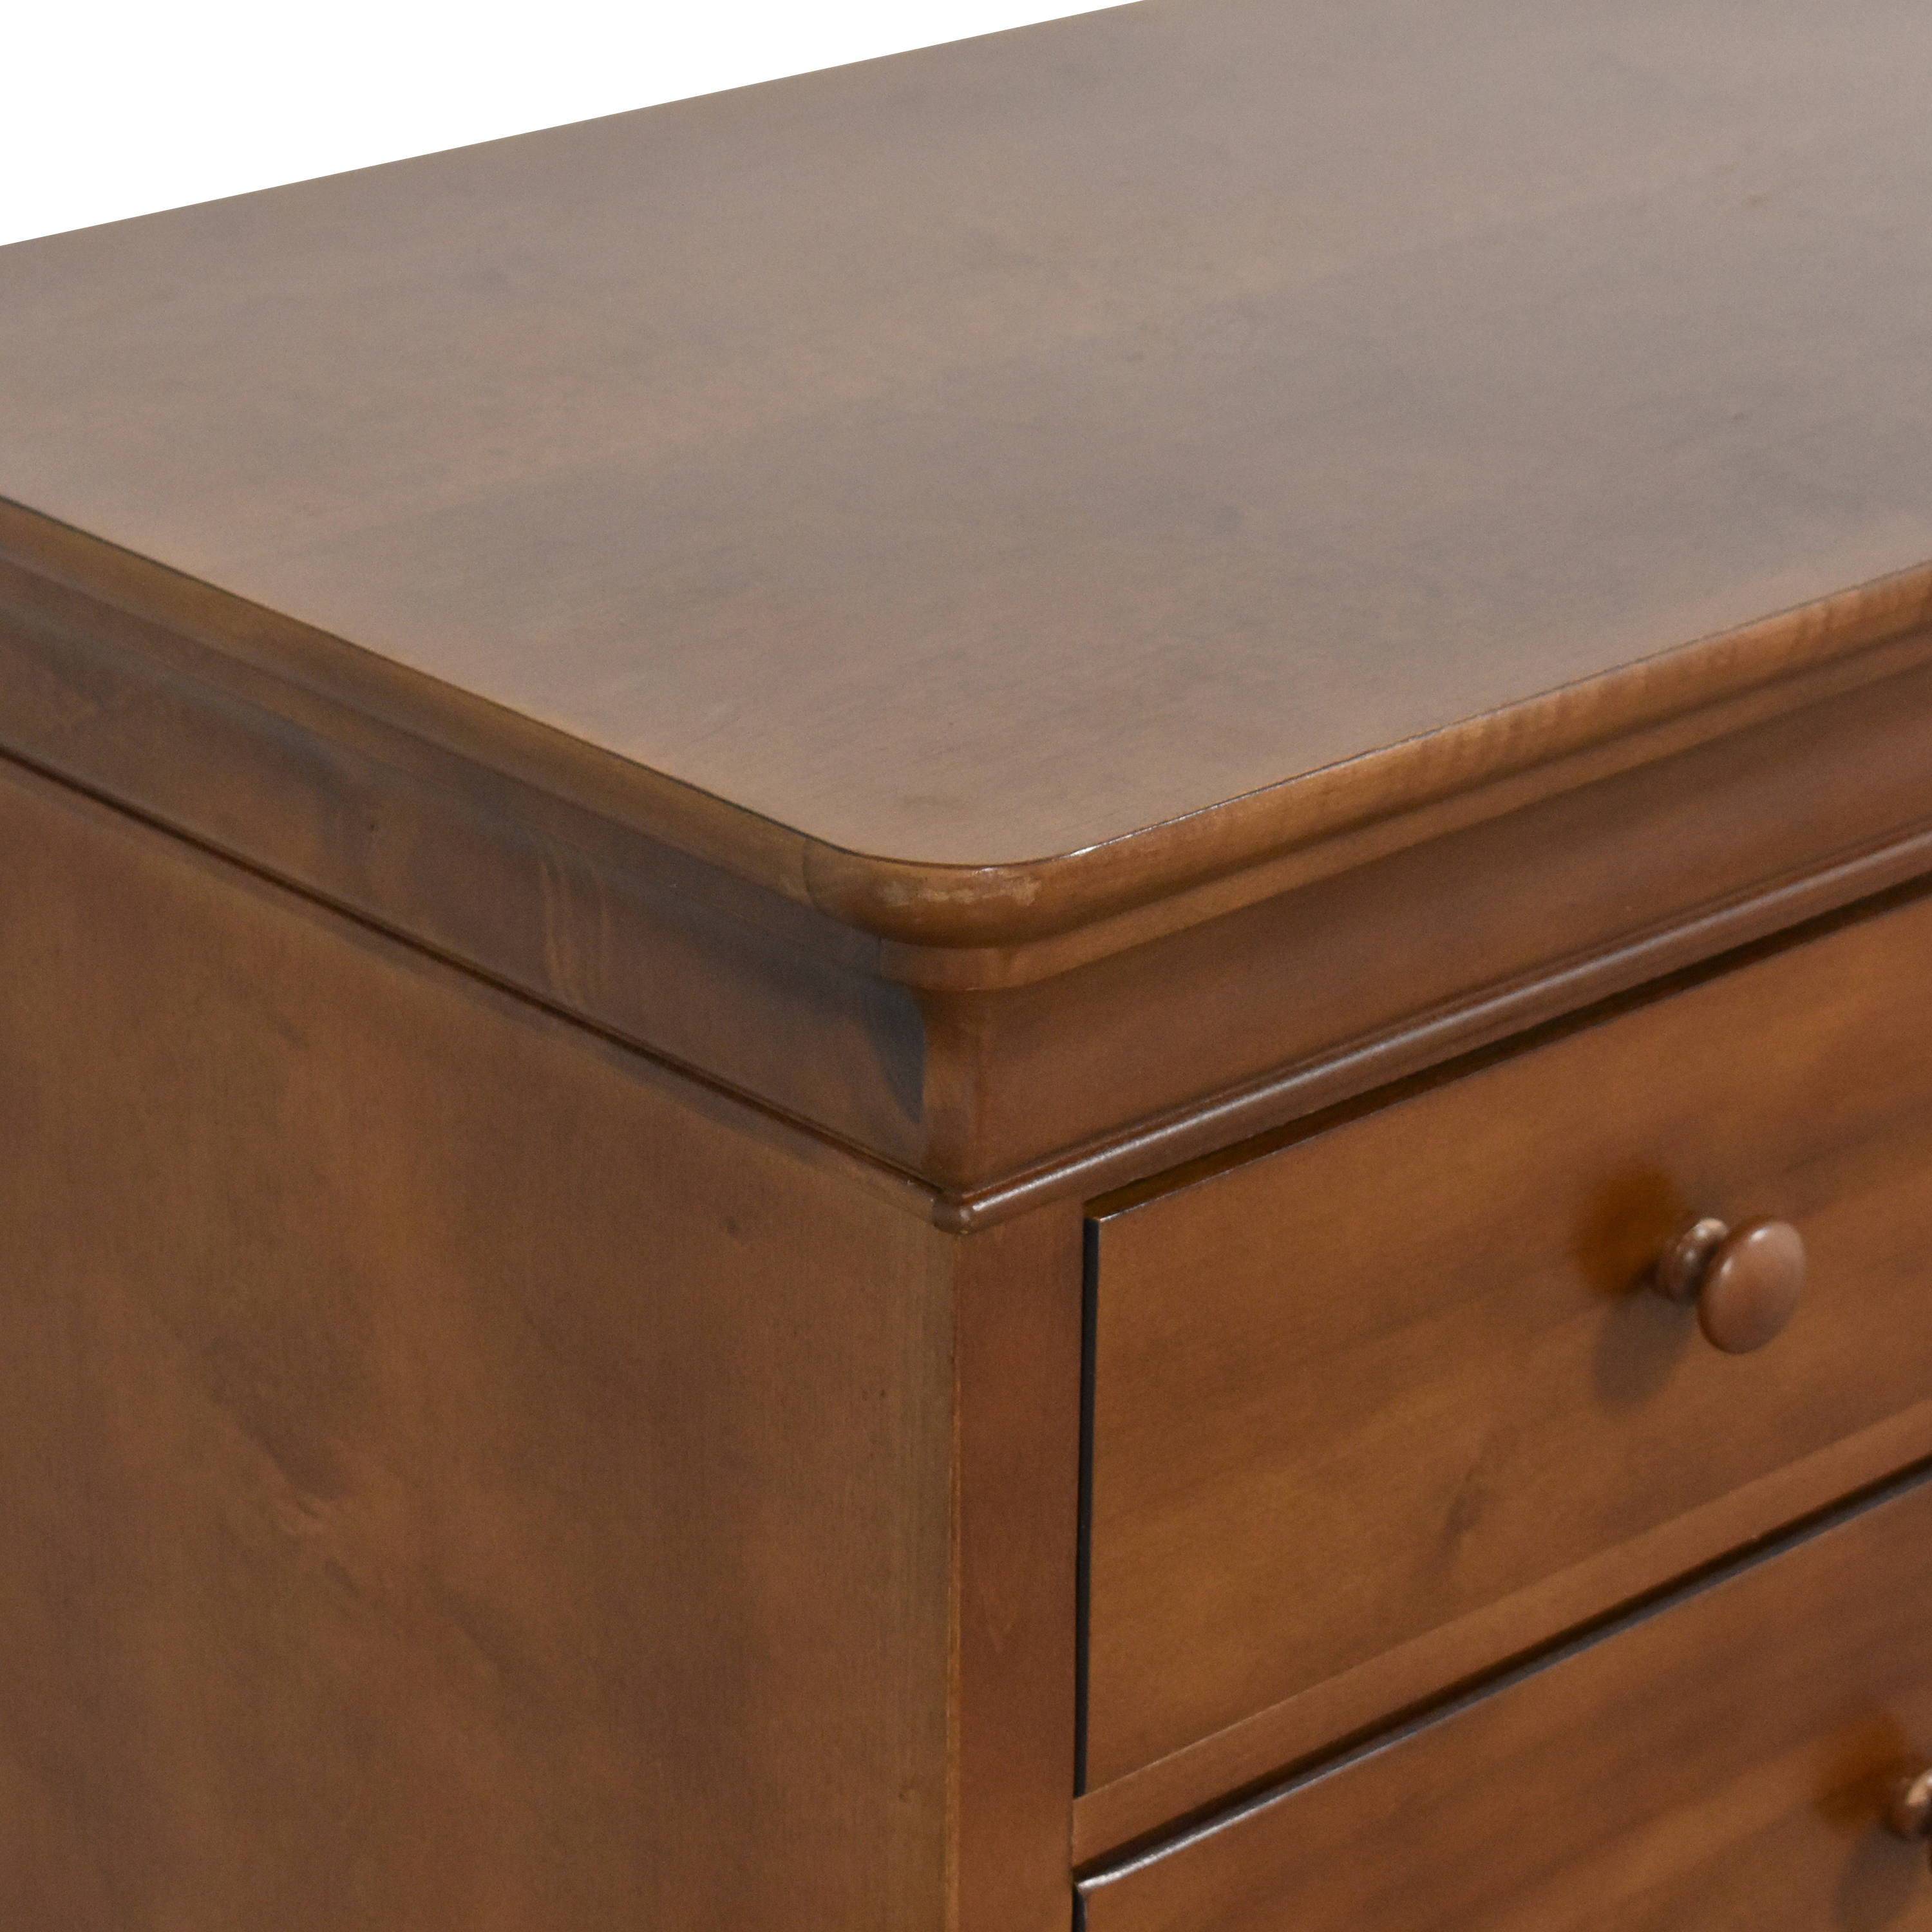 Stanley Furniture Stanley Furniture Young America All Seasons Double Dresser brown